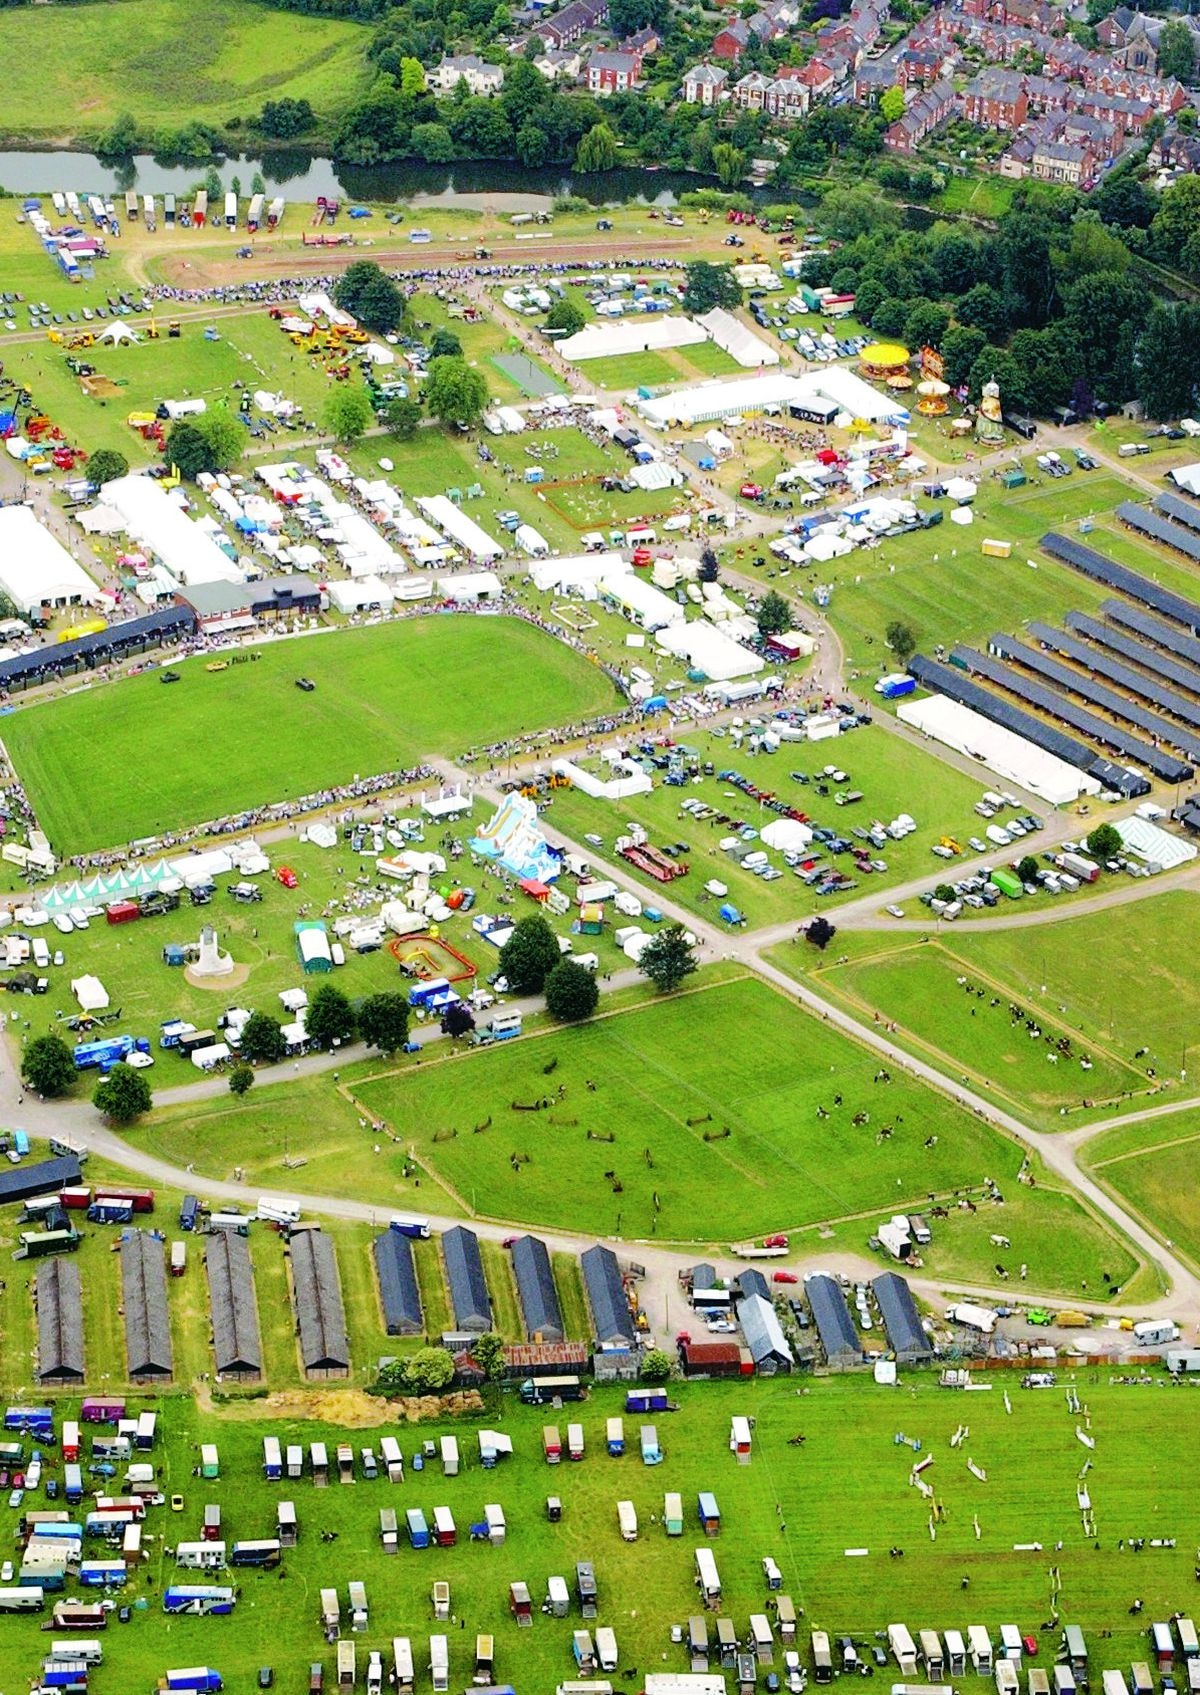 The West Mid Showground